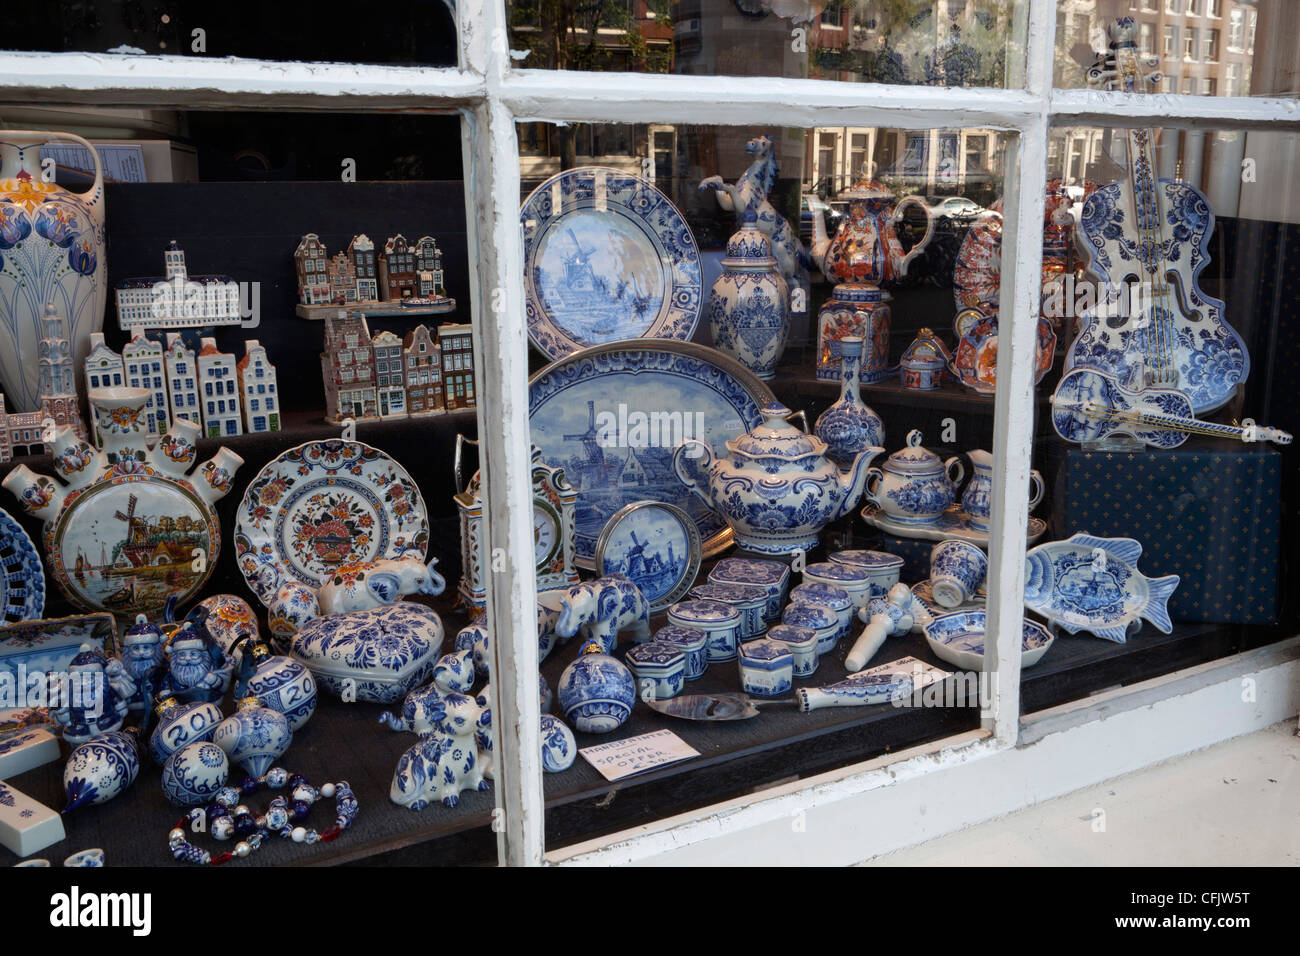 Delftware in shop window, Amsterdam, North Holland, The Netherlands, Europe Stock Photo